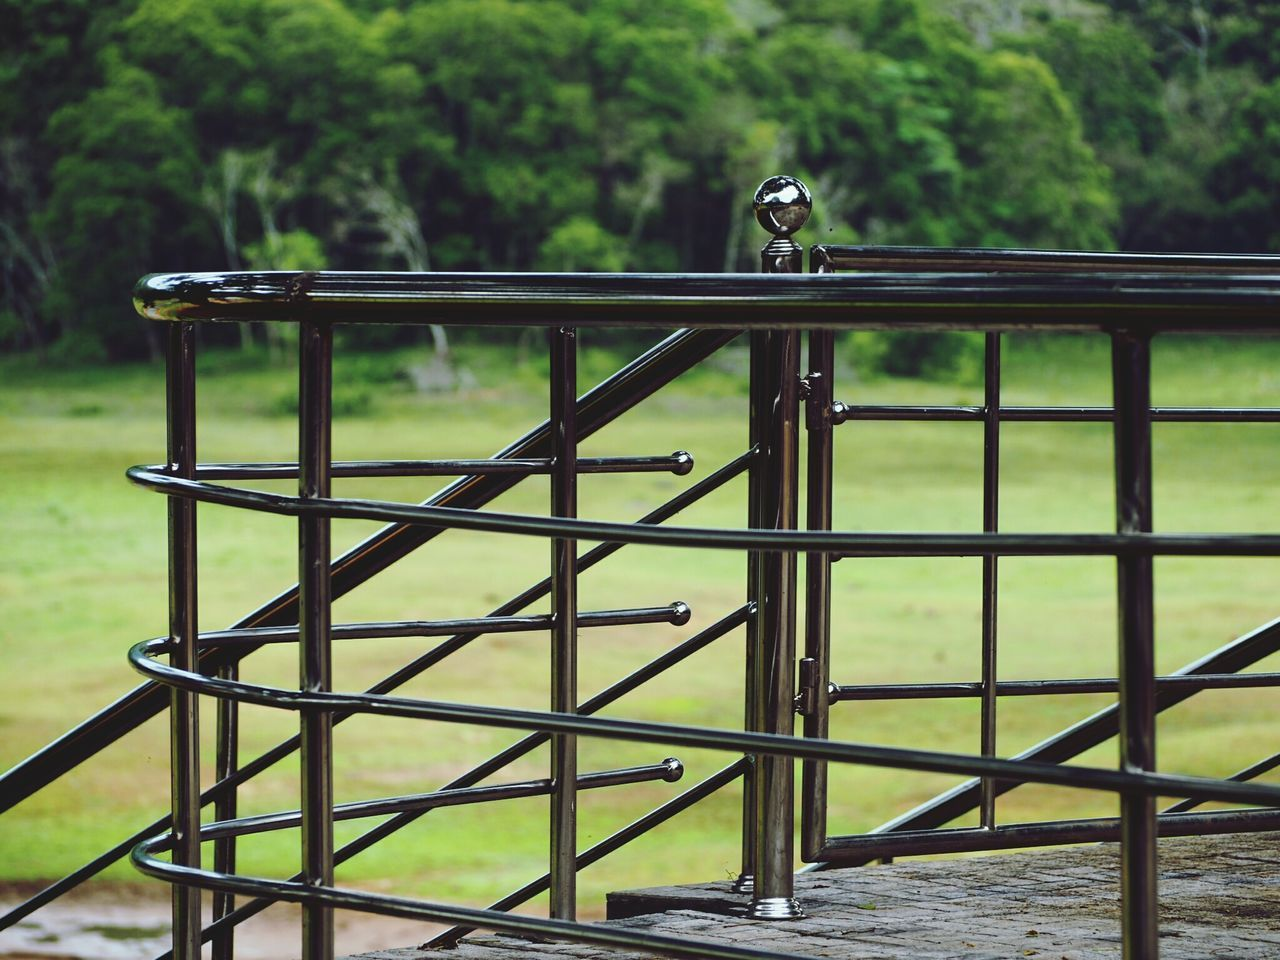 animal themes, bird, one animal, animals in the wild, metal, railing, animal wildlife, outdoors, day, focus on foreground, no people, perching, nature, close-up